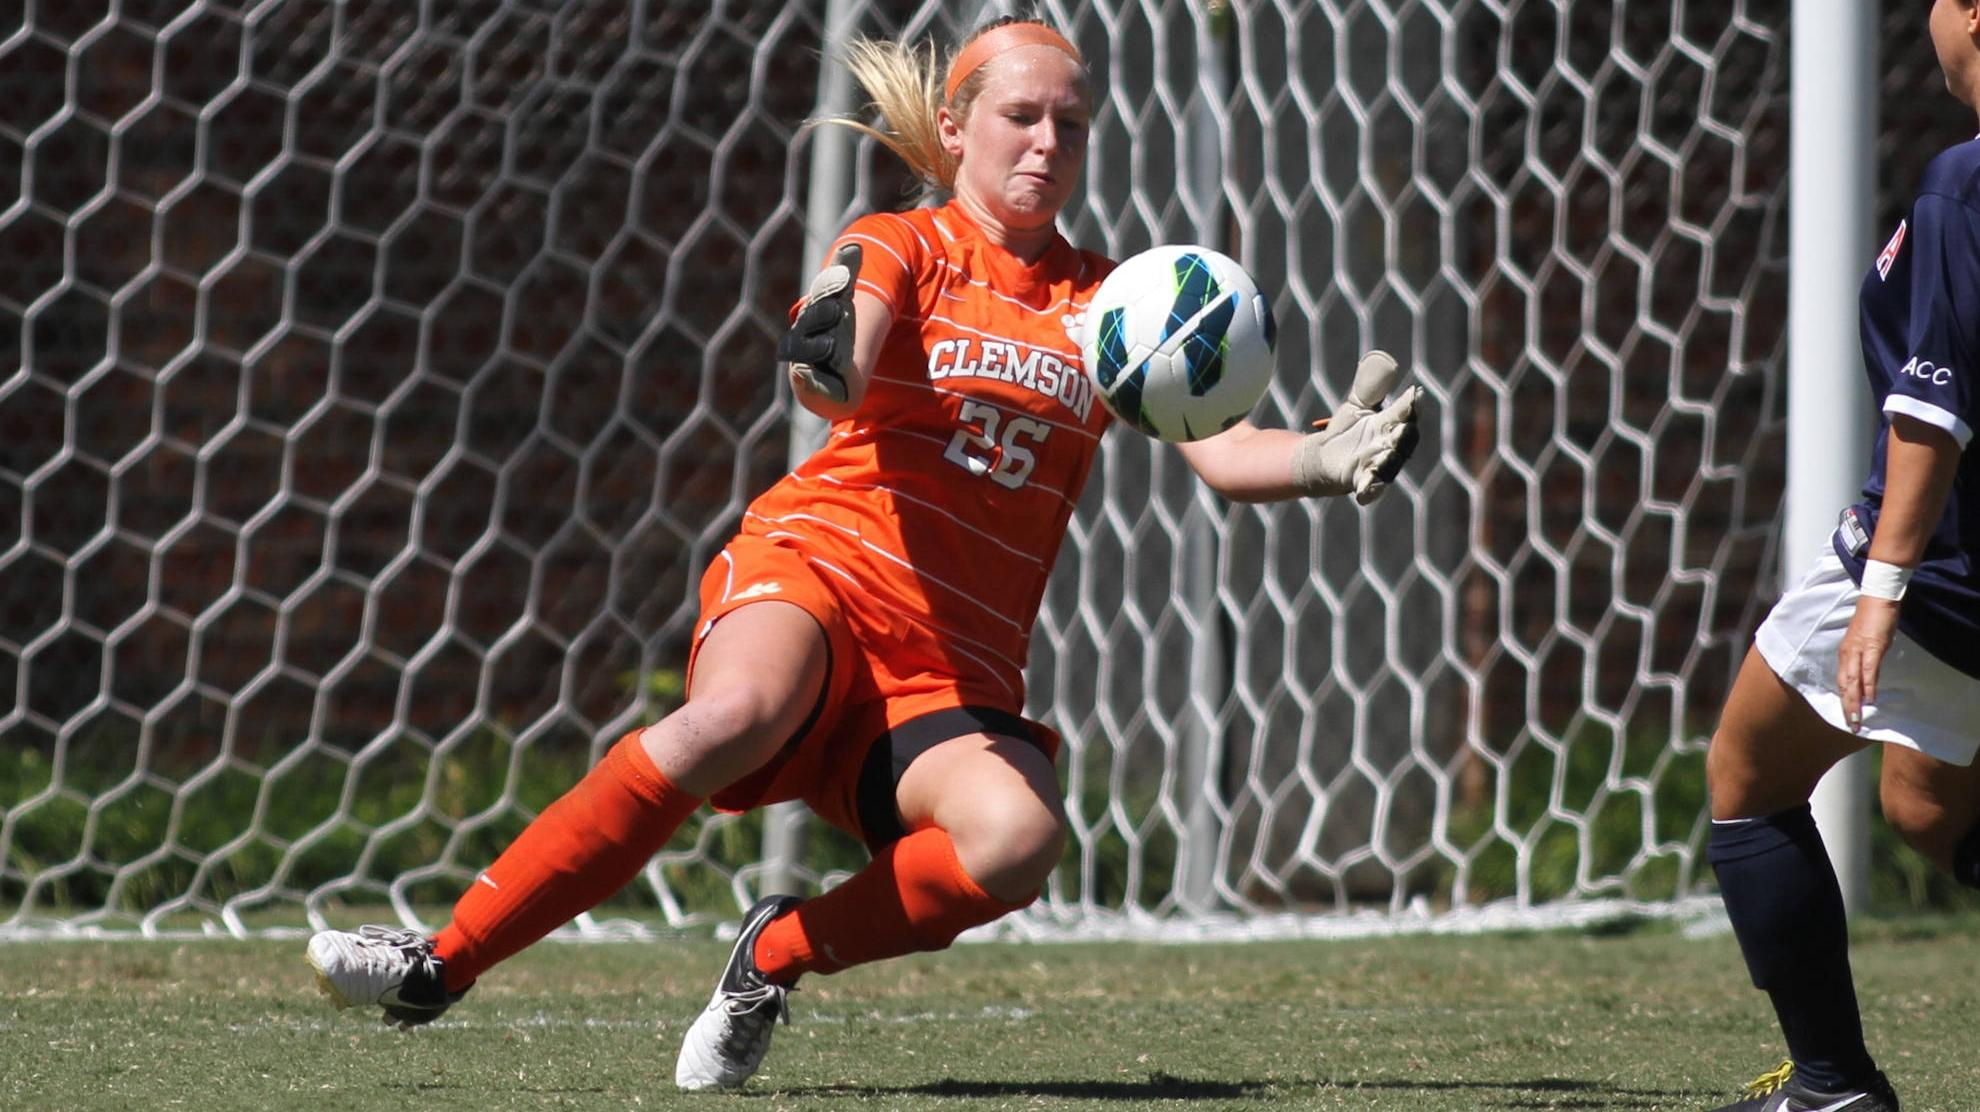 Tigers Drop 1-0 Decision to Fifth-Ranked Virginia Sunday